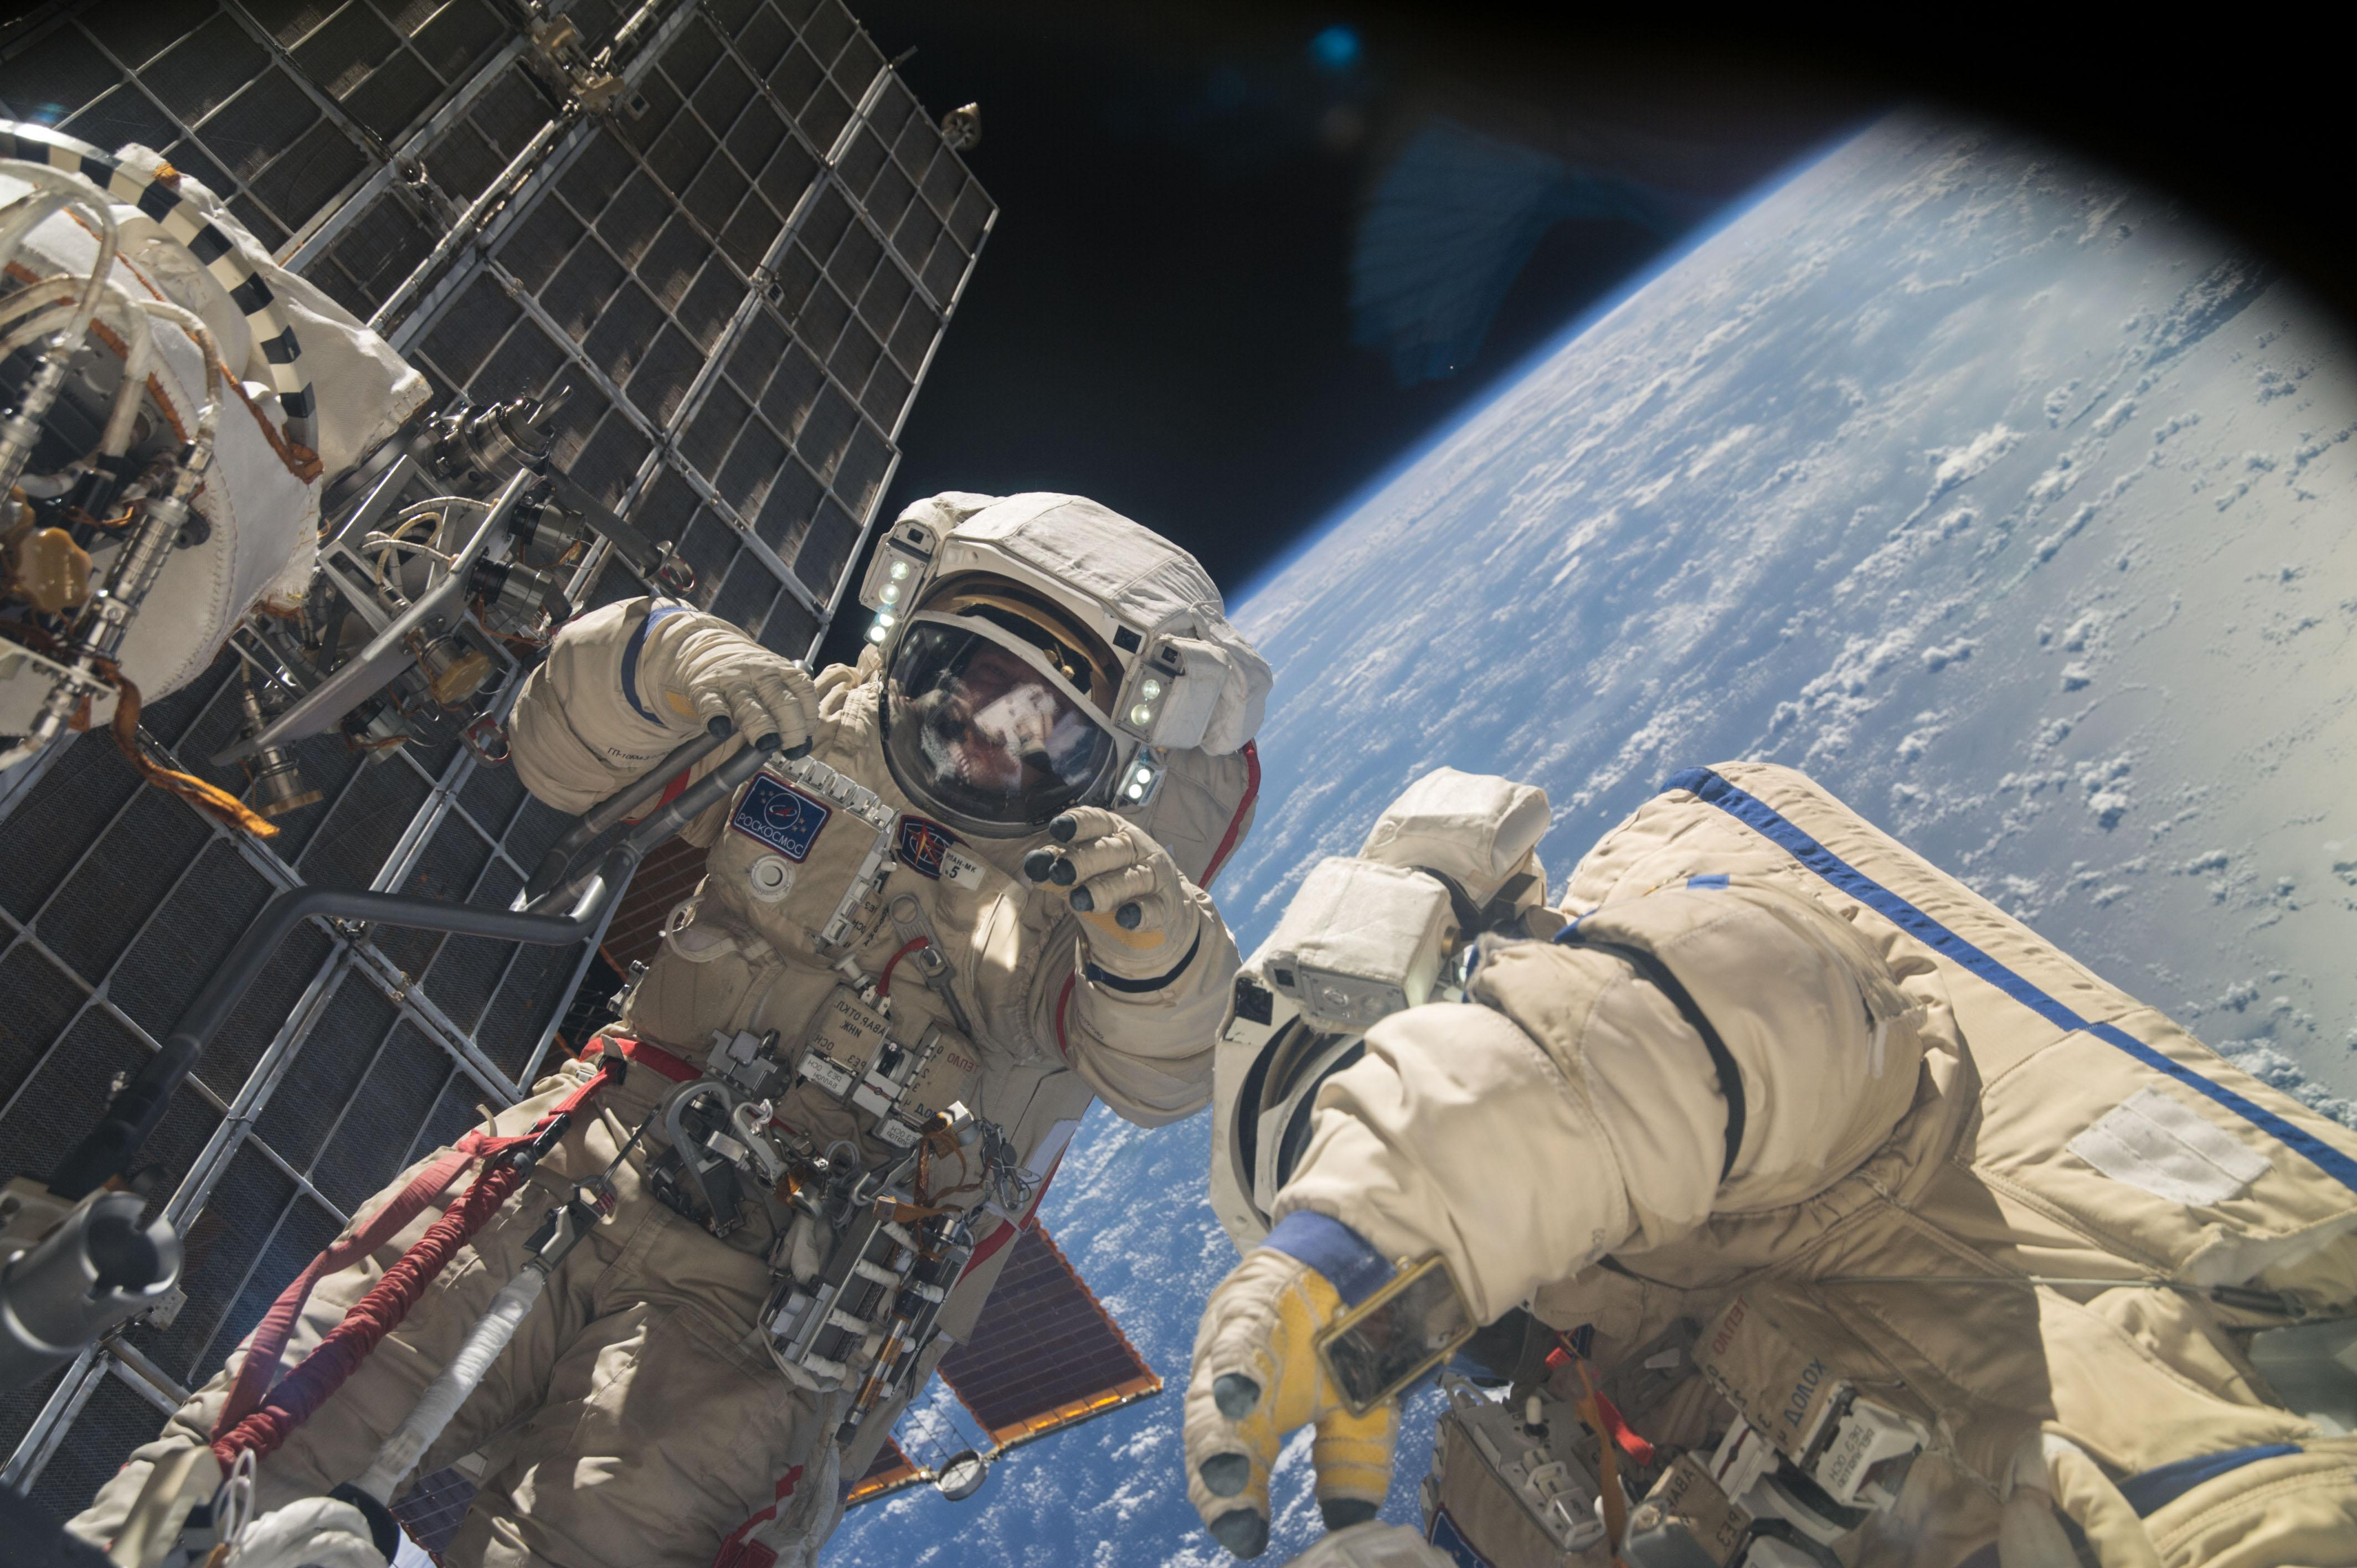 Two Astronauts Go Out into Outer Space